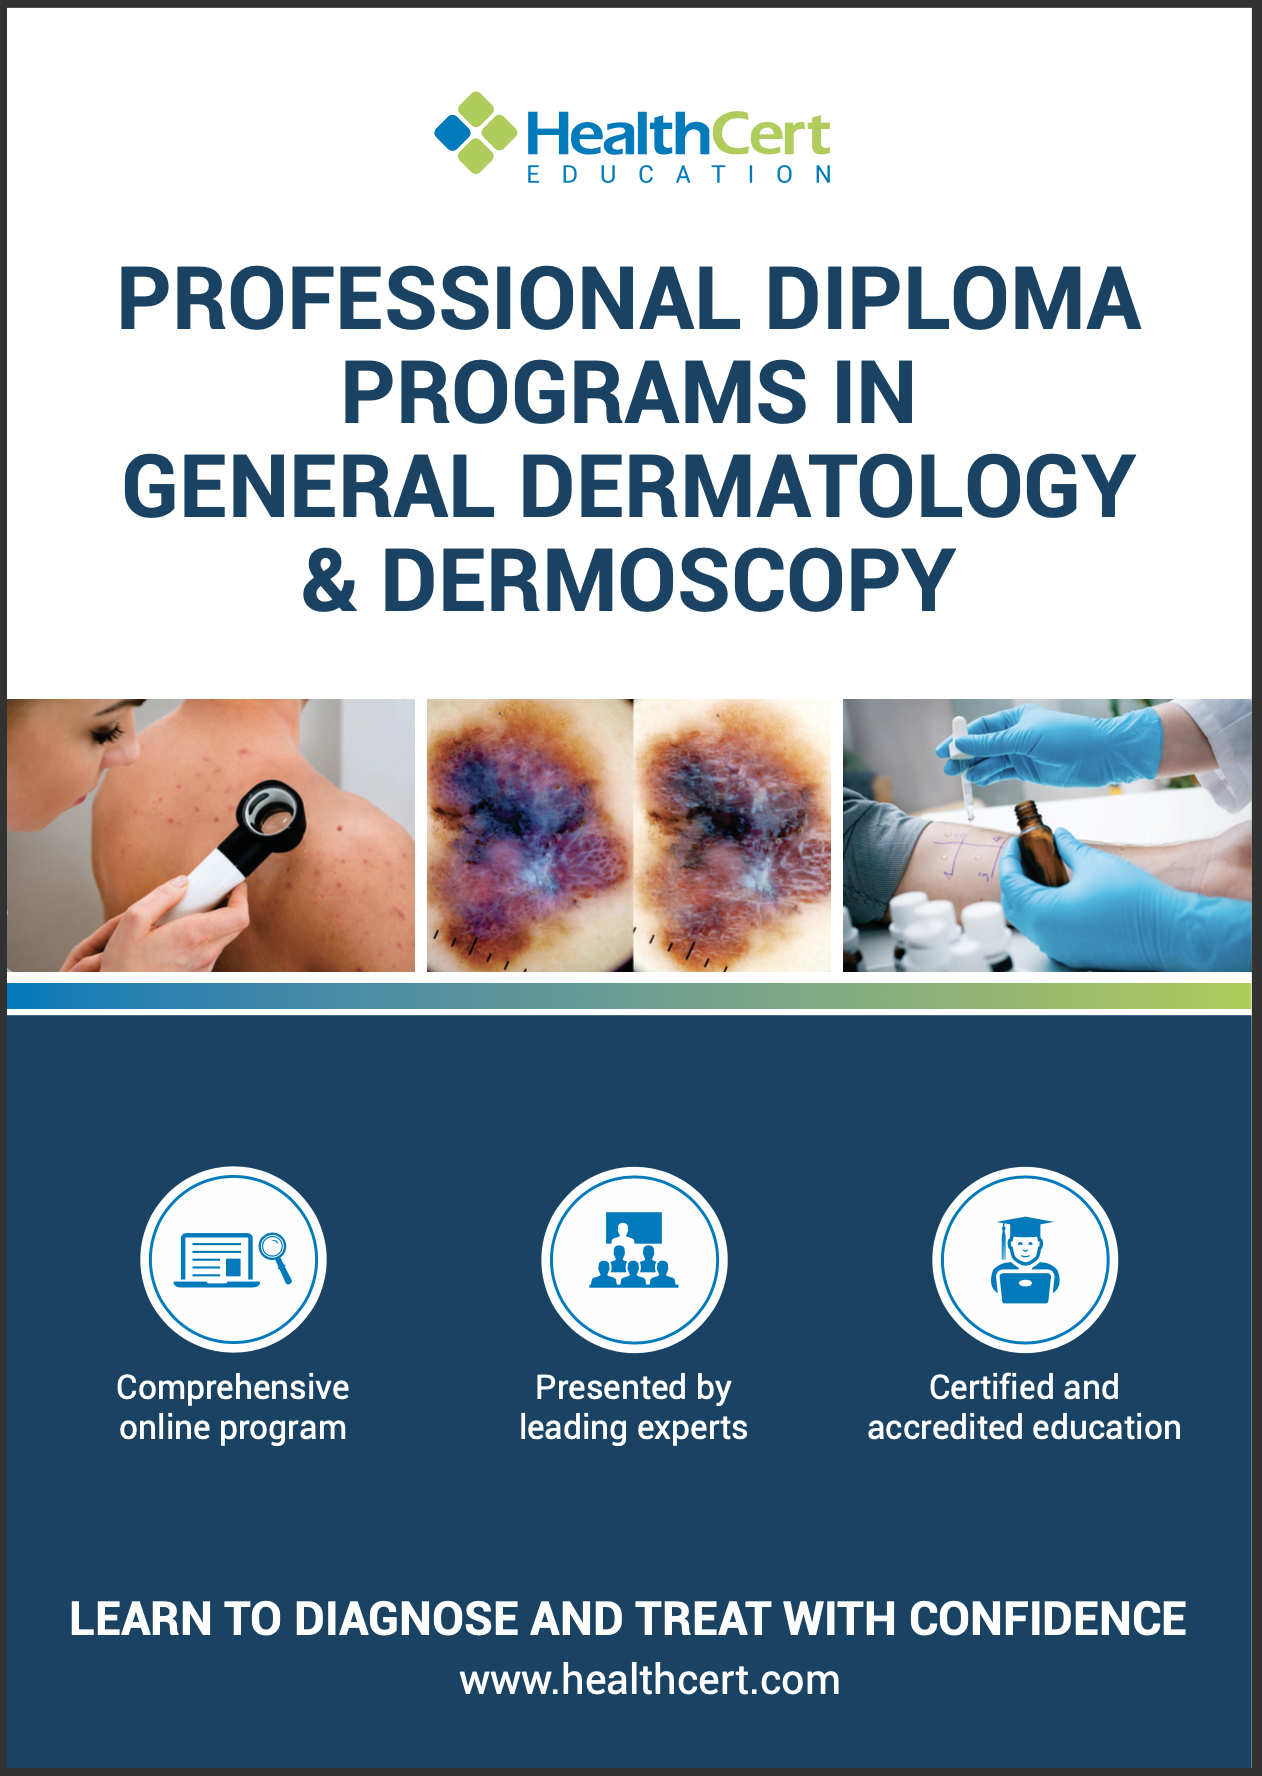 Dermatology Dermoscopy brochure